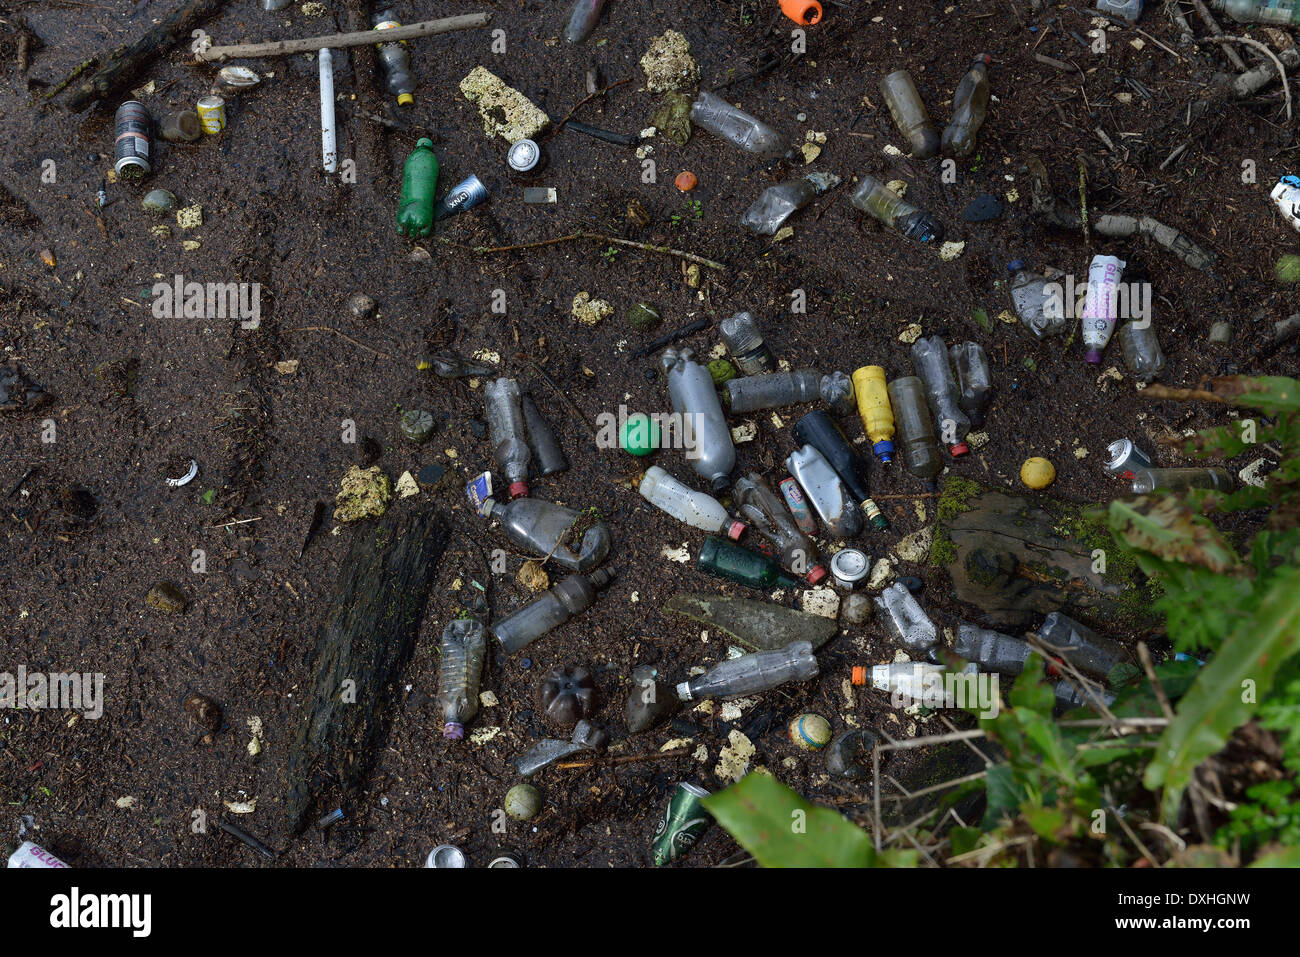 Single-use plastic products dumped by the side of a river - Stock Image